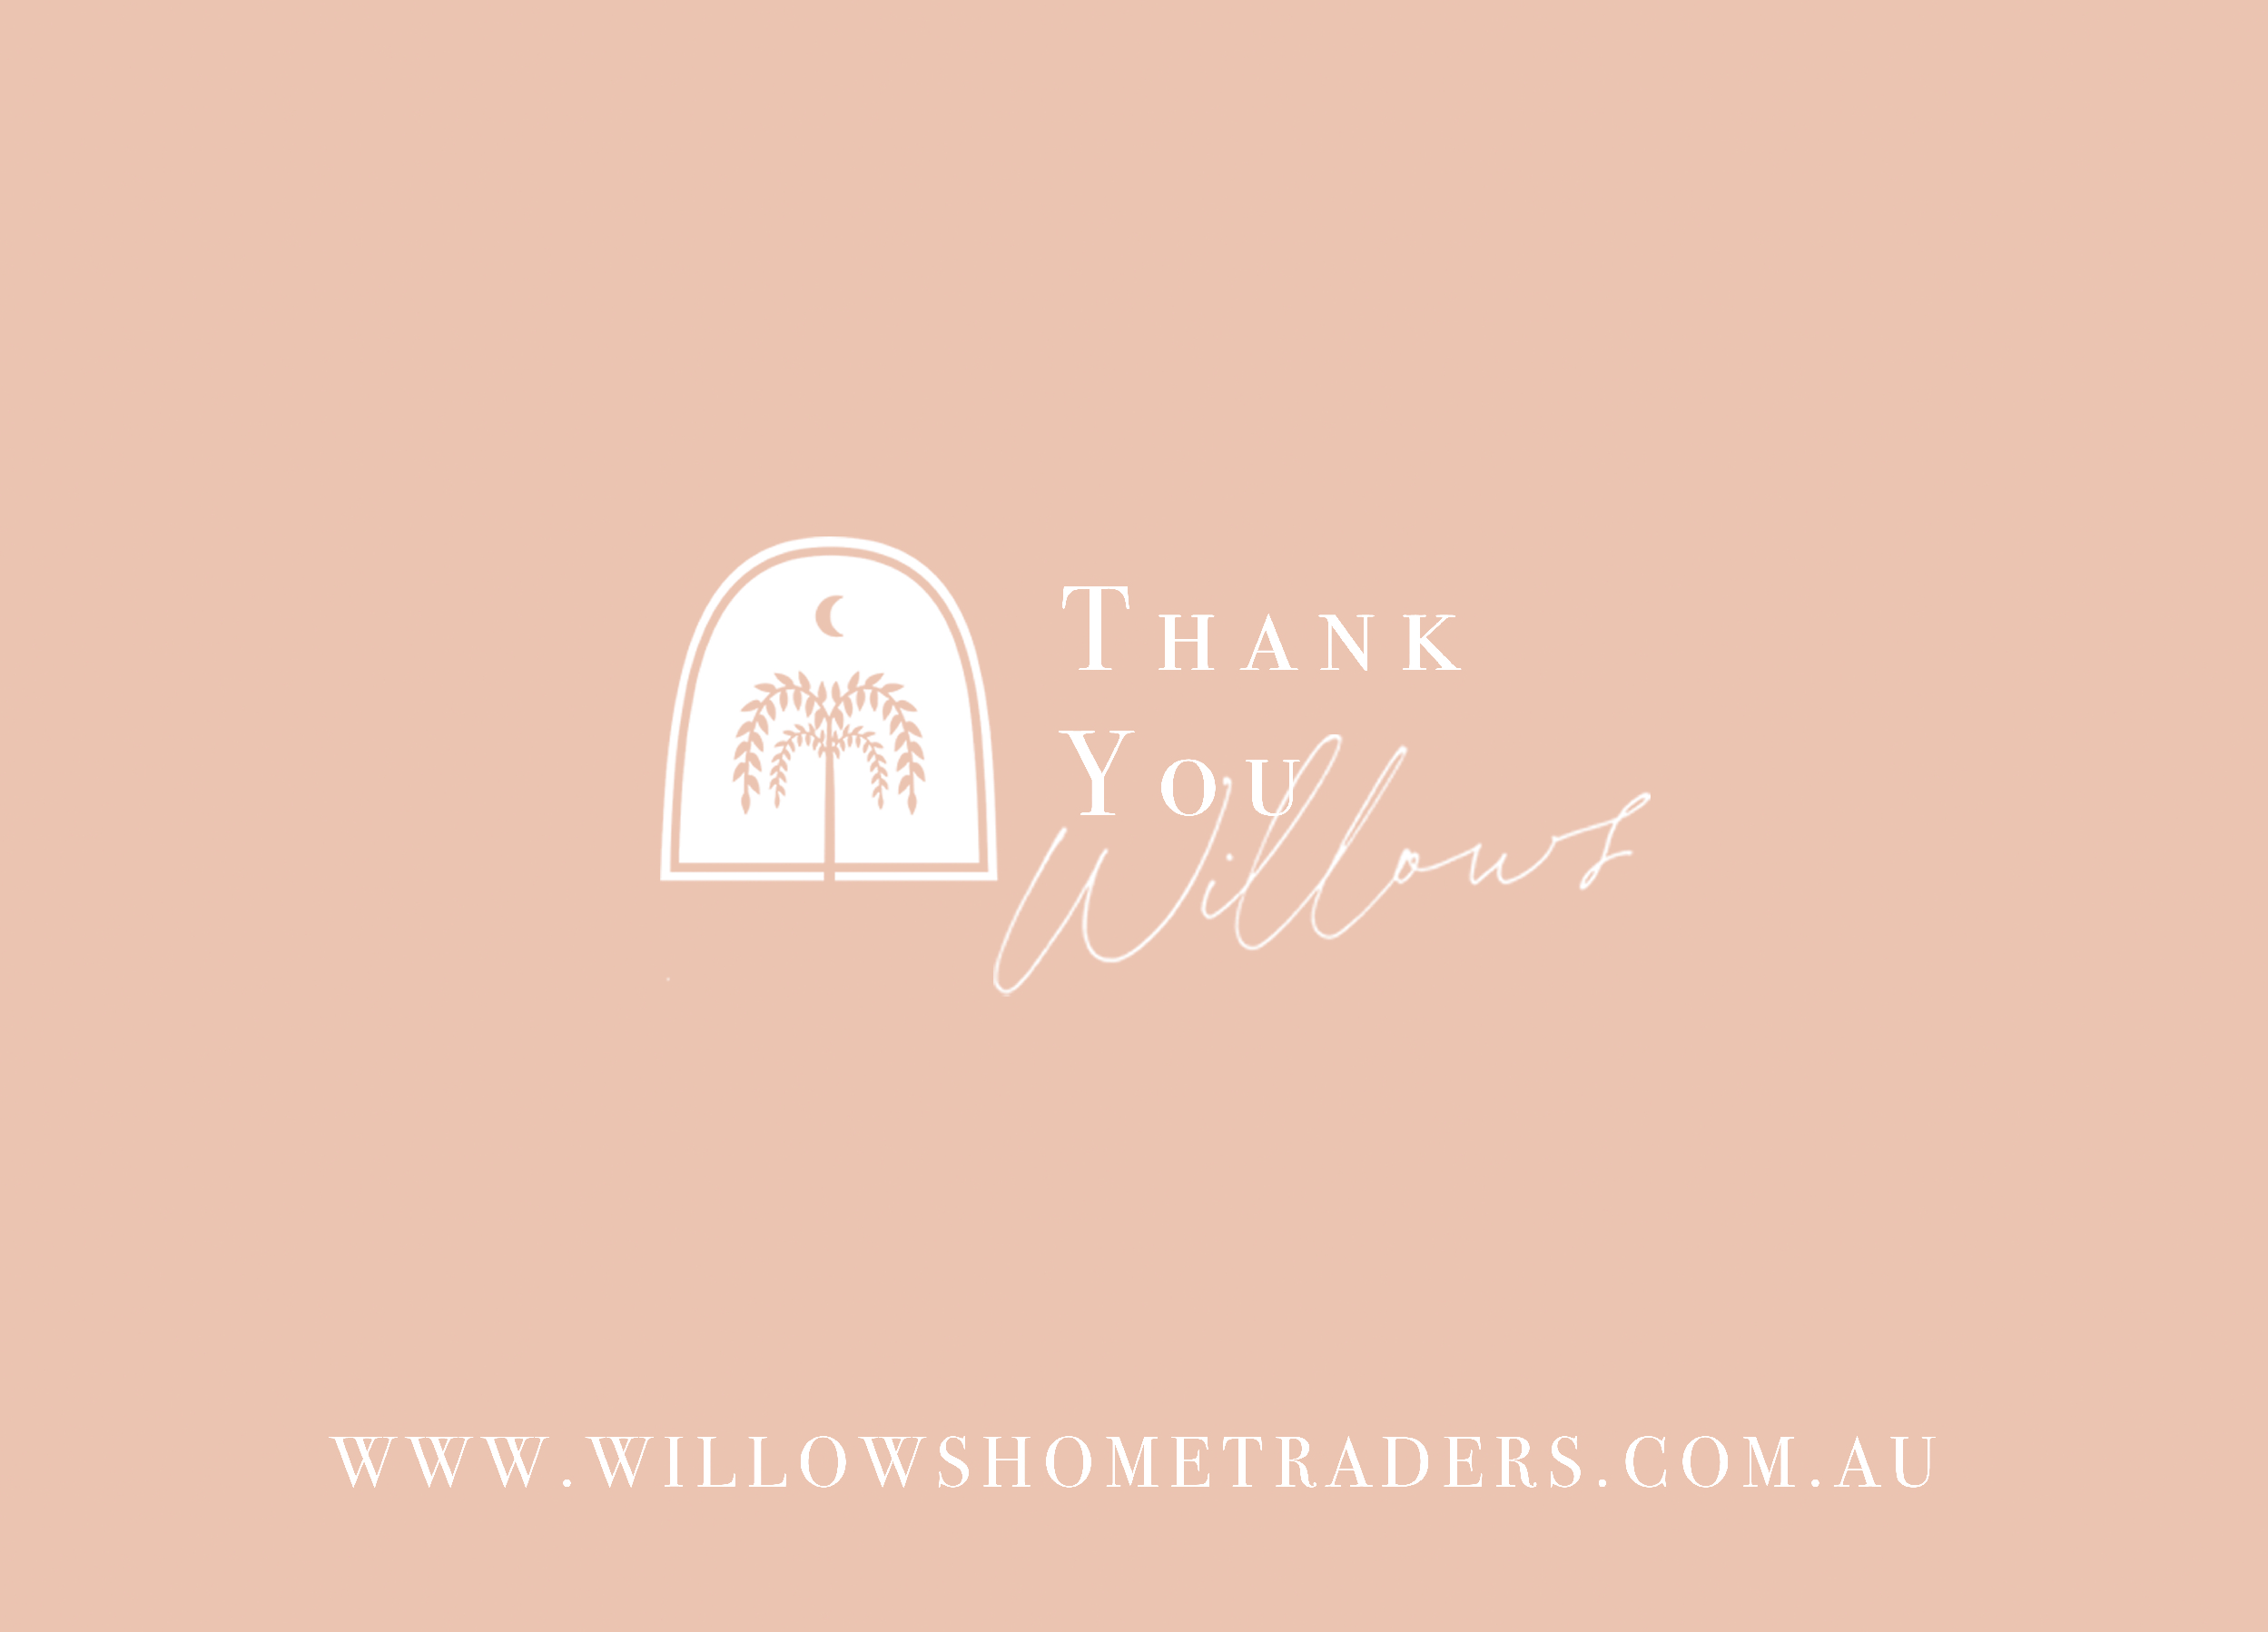 Thank You Cards Willows-01.jpg